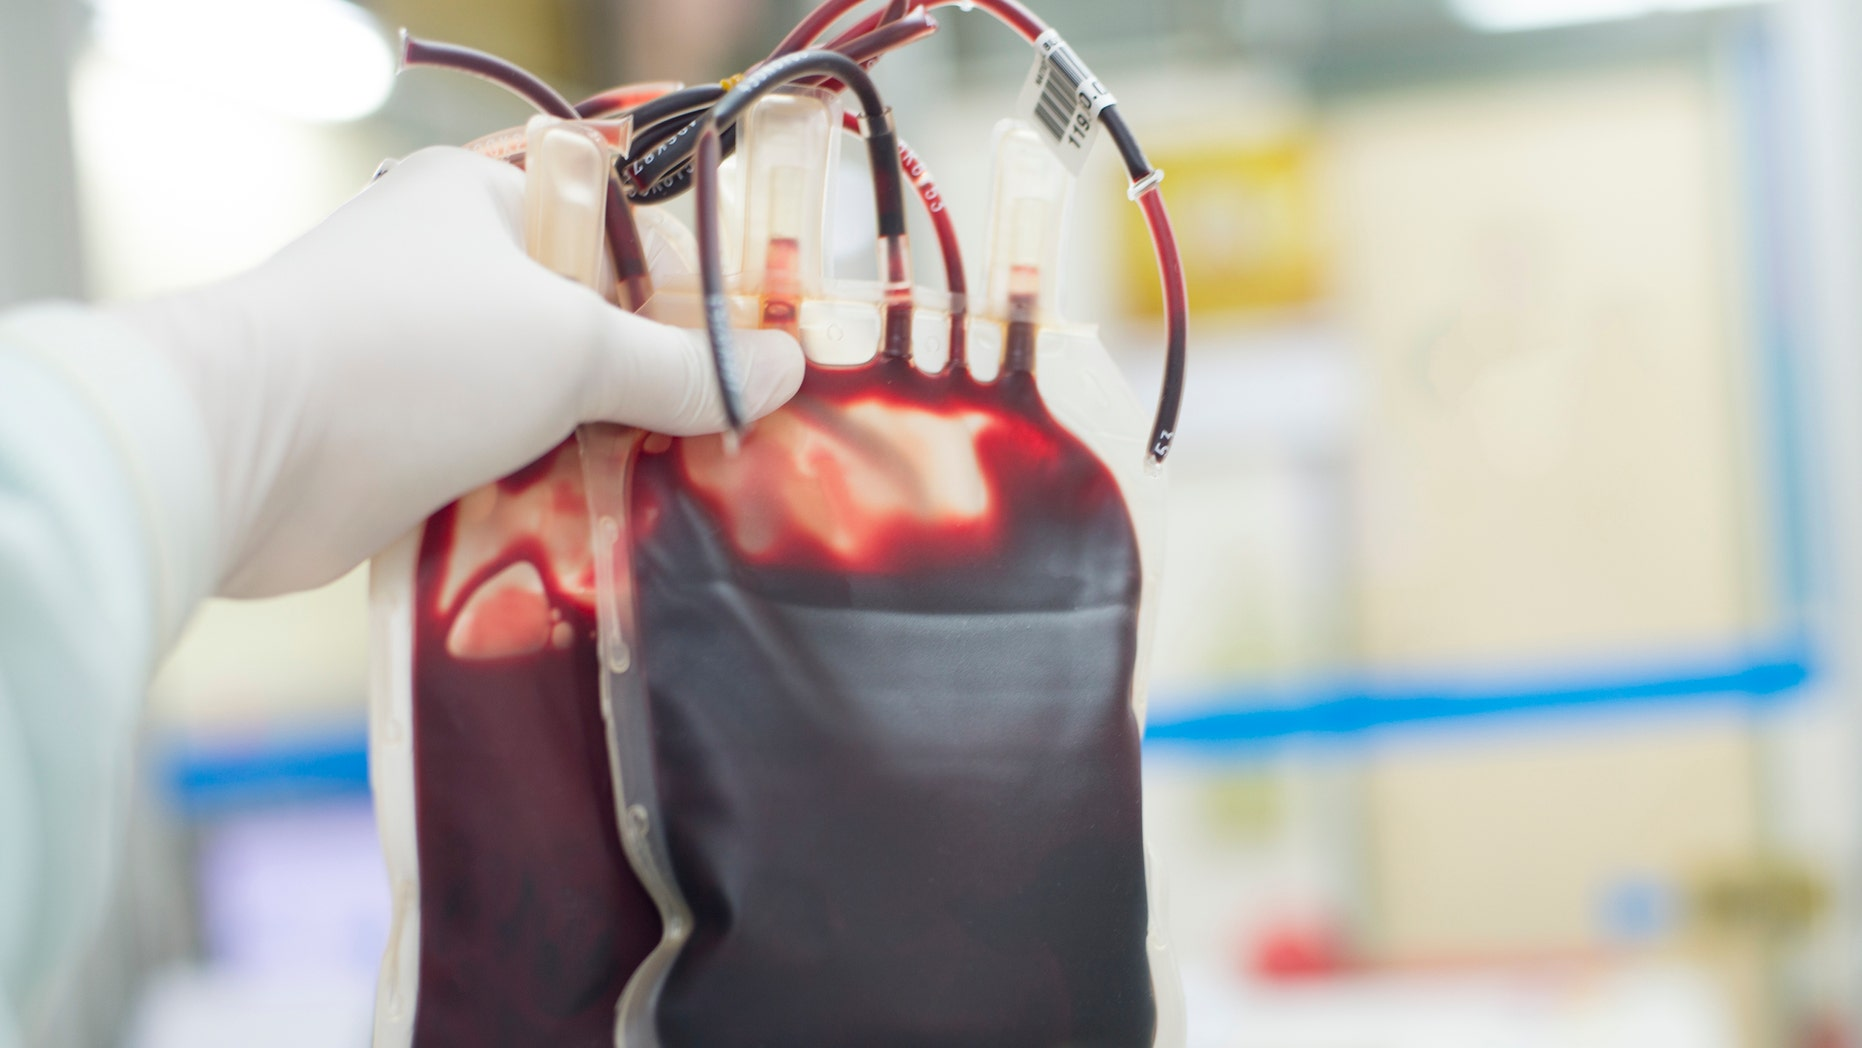 'Young Blood' Transfusions Are Ineffective and Dangerous, FDA Warns